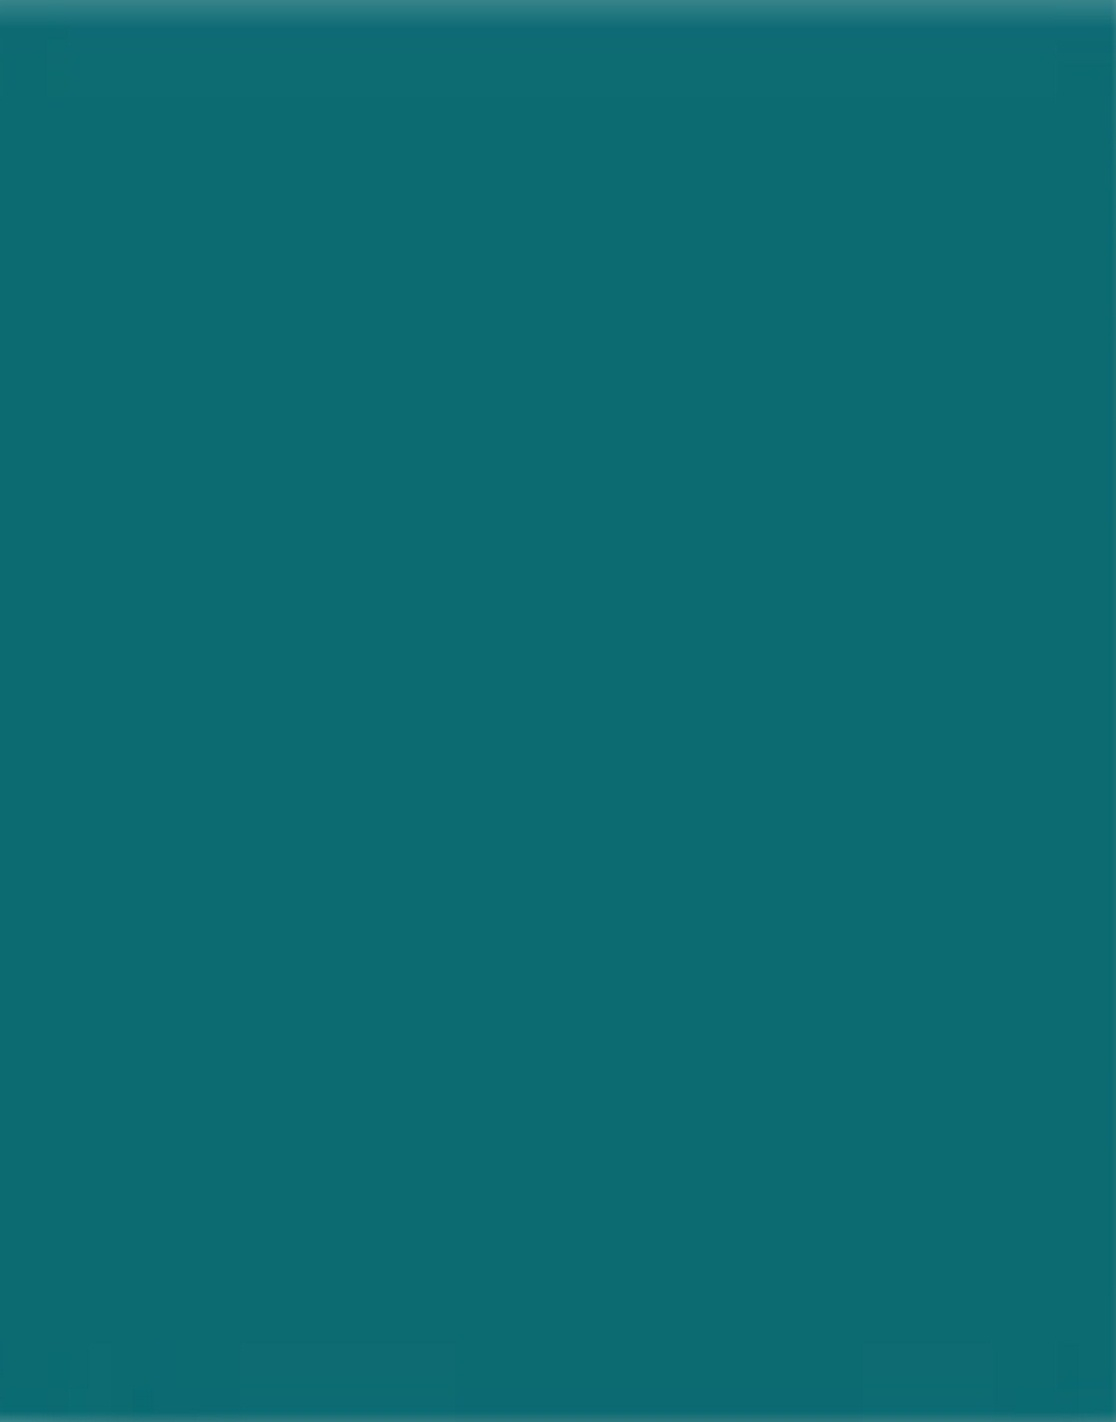 Green Colors For Living Rooms: Teal, Teal Colors And Google Search On Pinterest